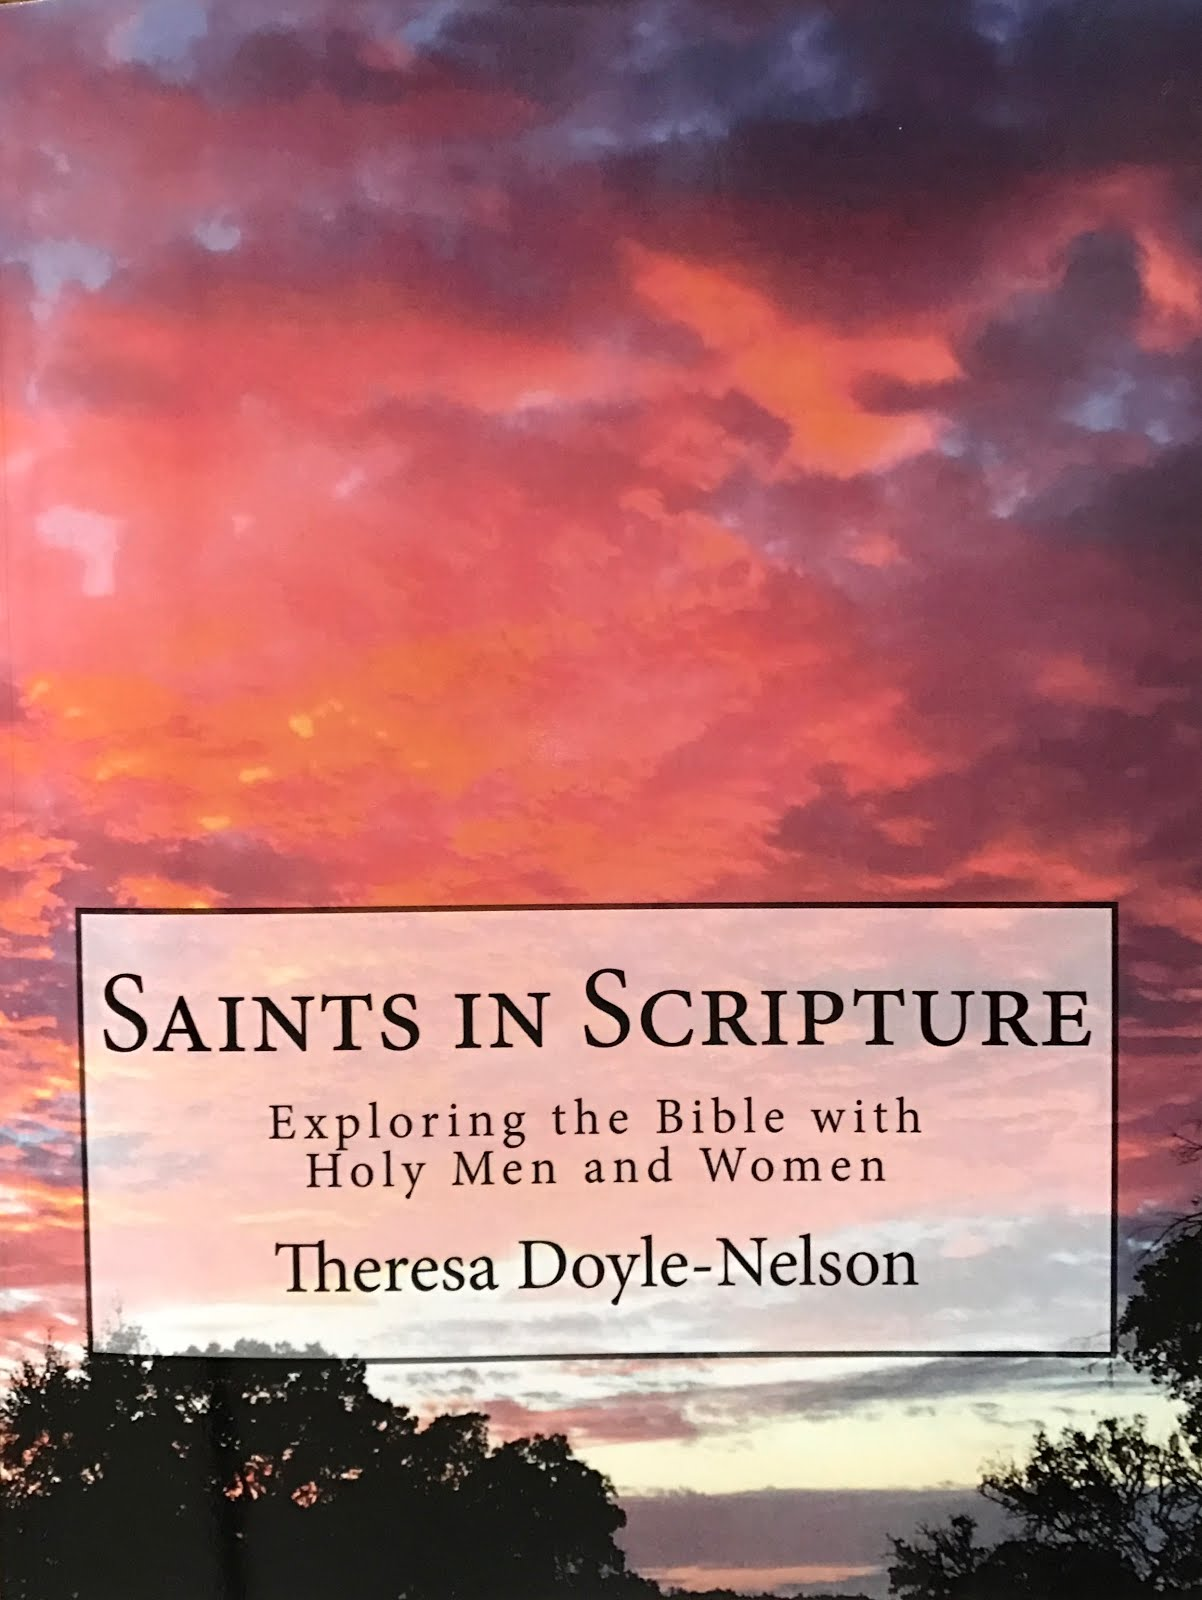 My New Book: Saints in Scripture